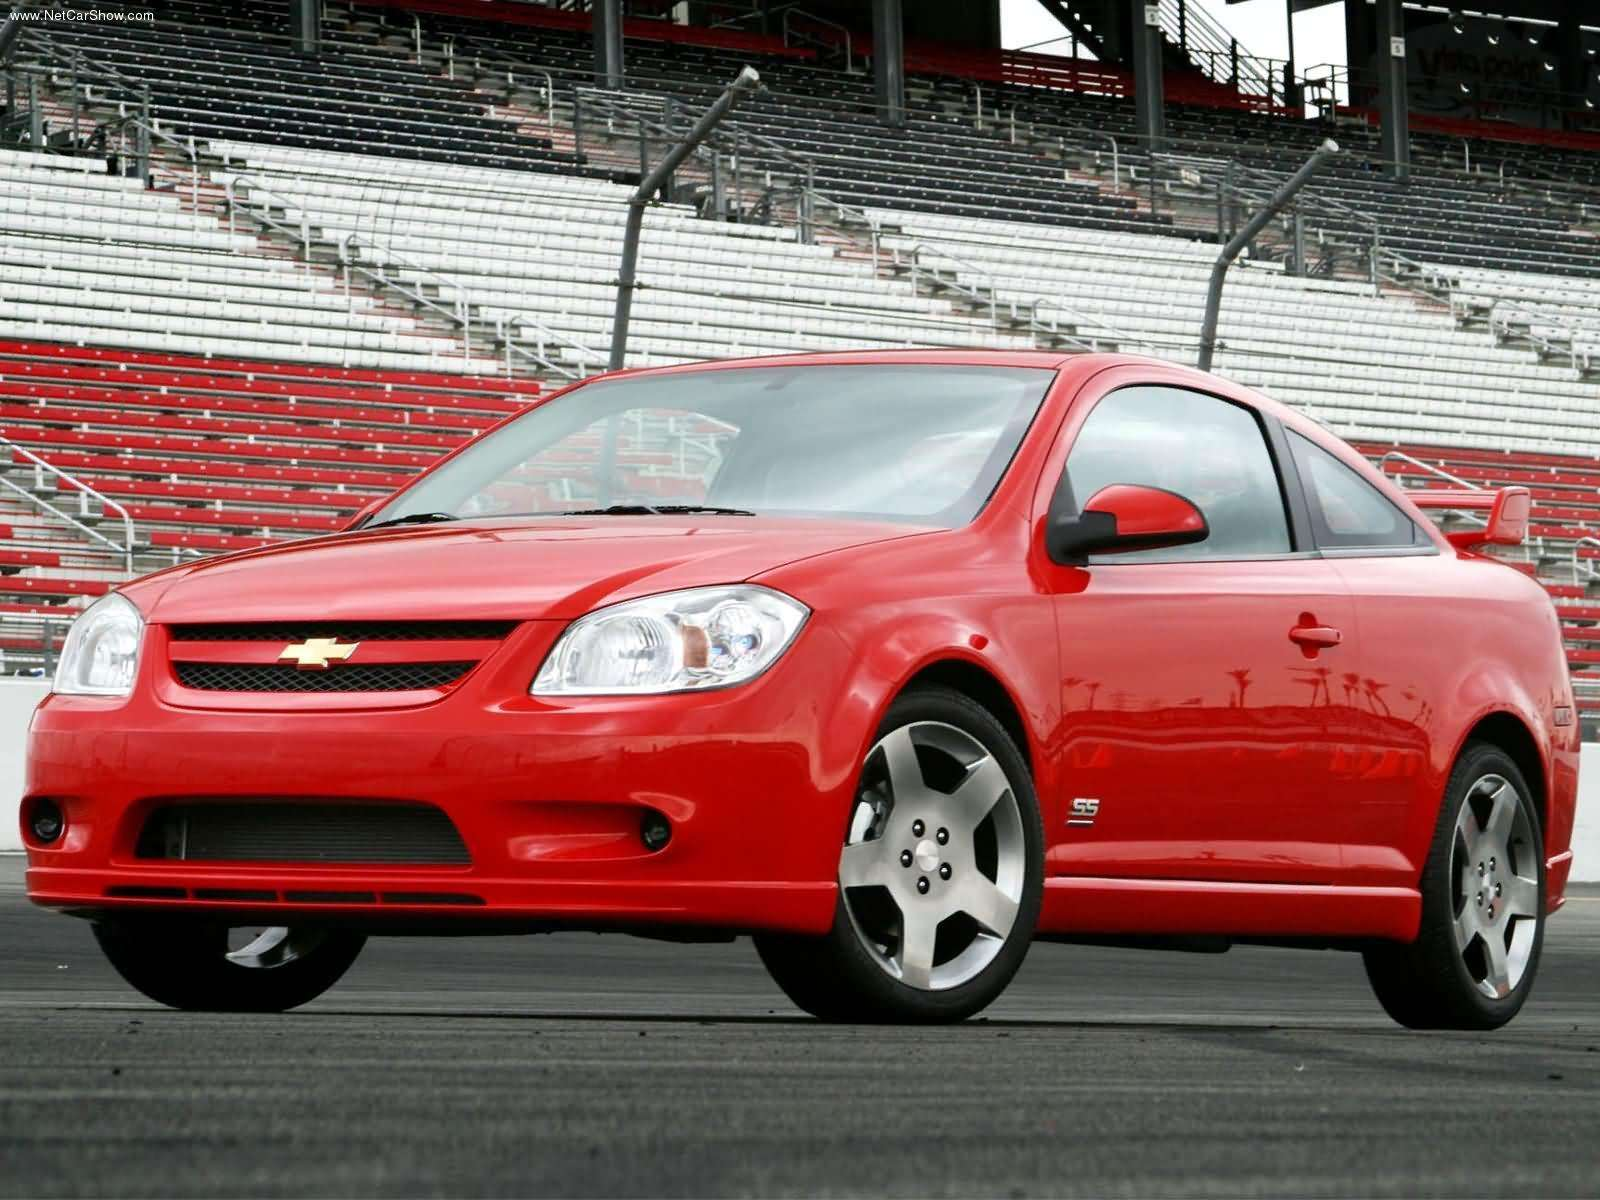 Chevrolet Cobalt SS Coupe 2005